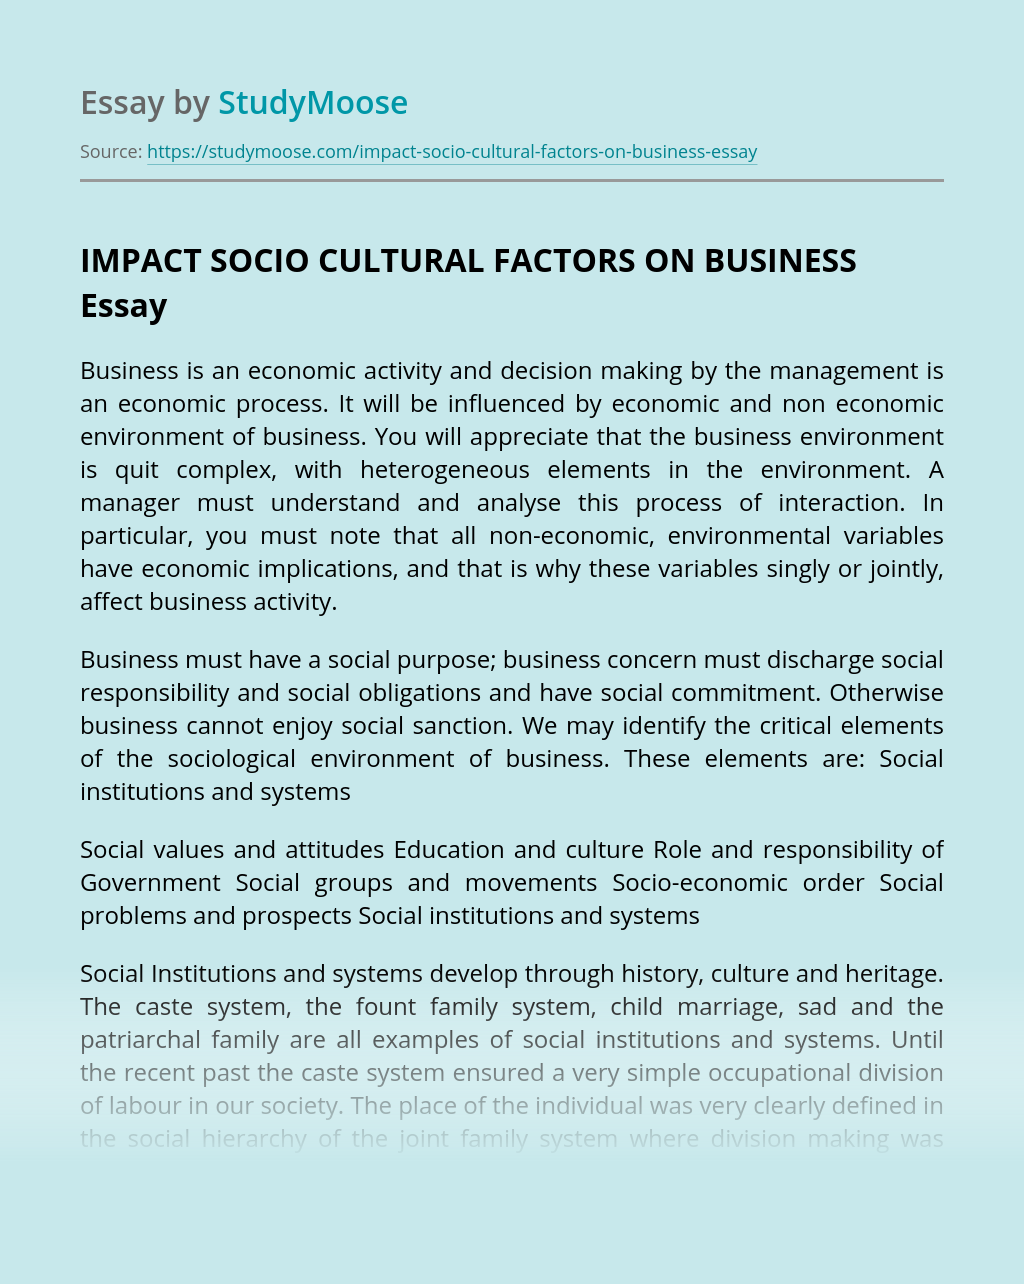 IMPACT SOCIO CULTURAL FACTORS ON BUSINESS